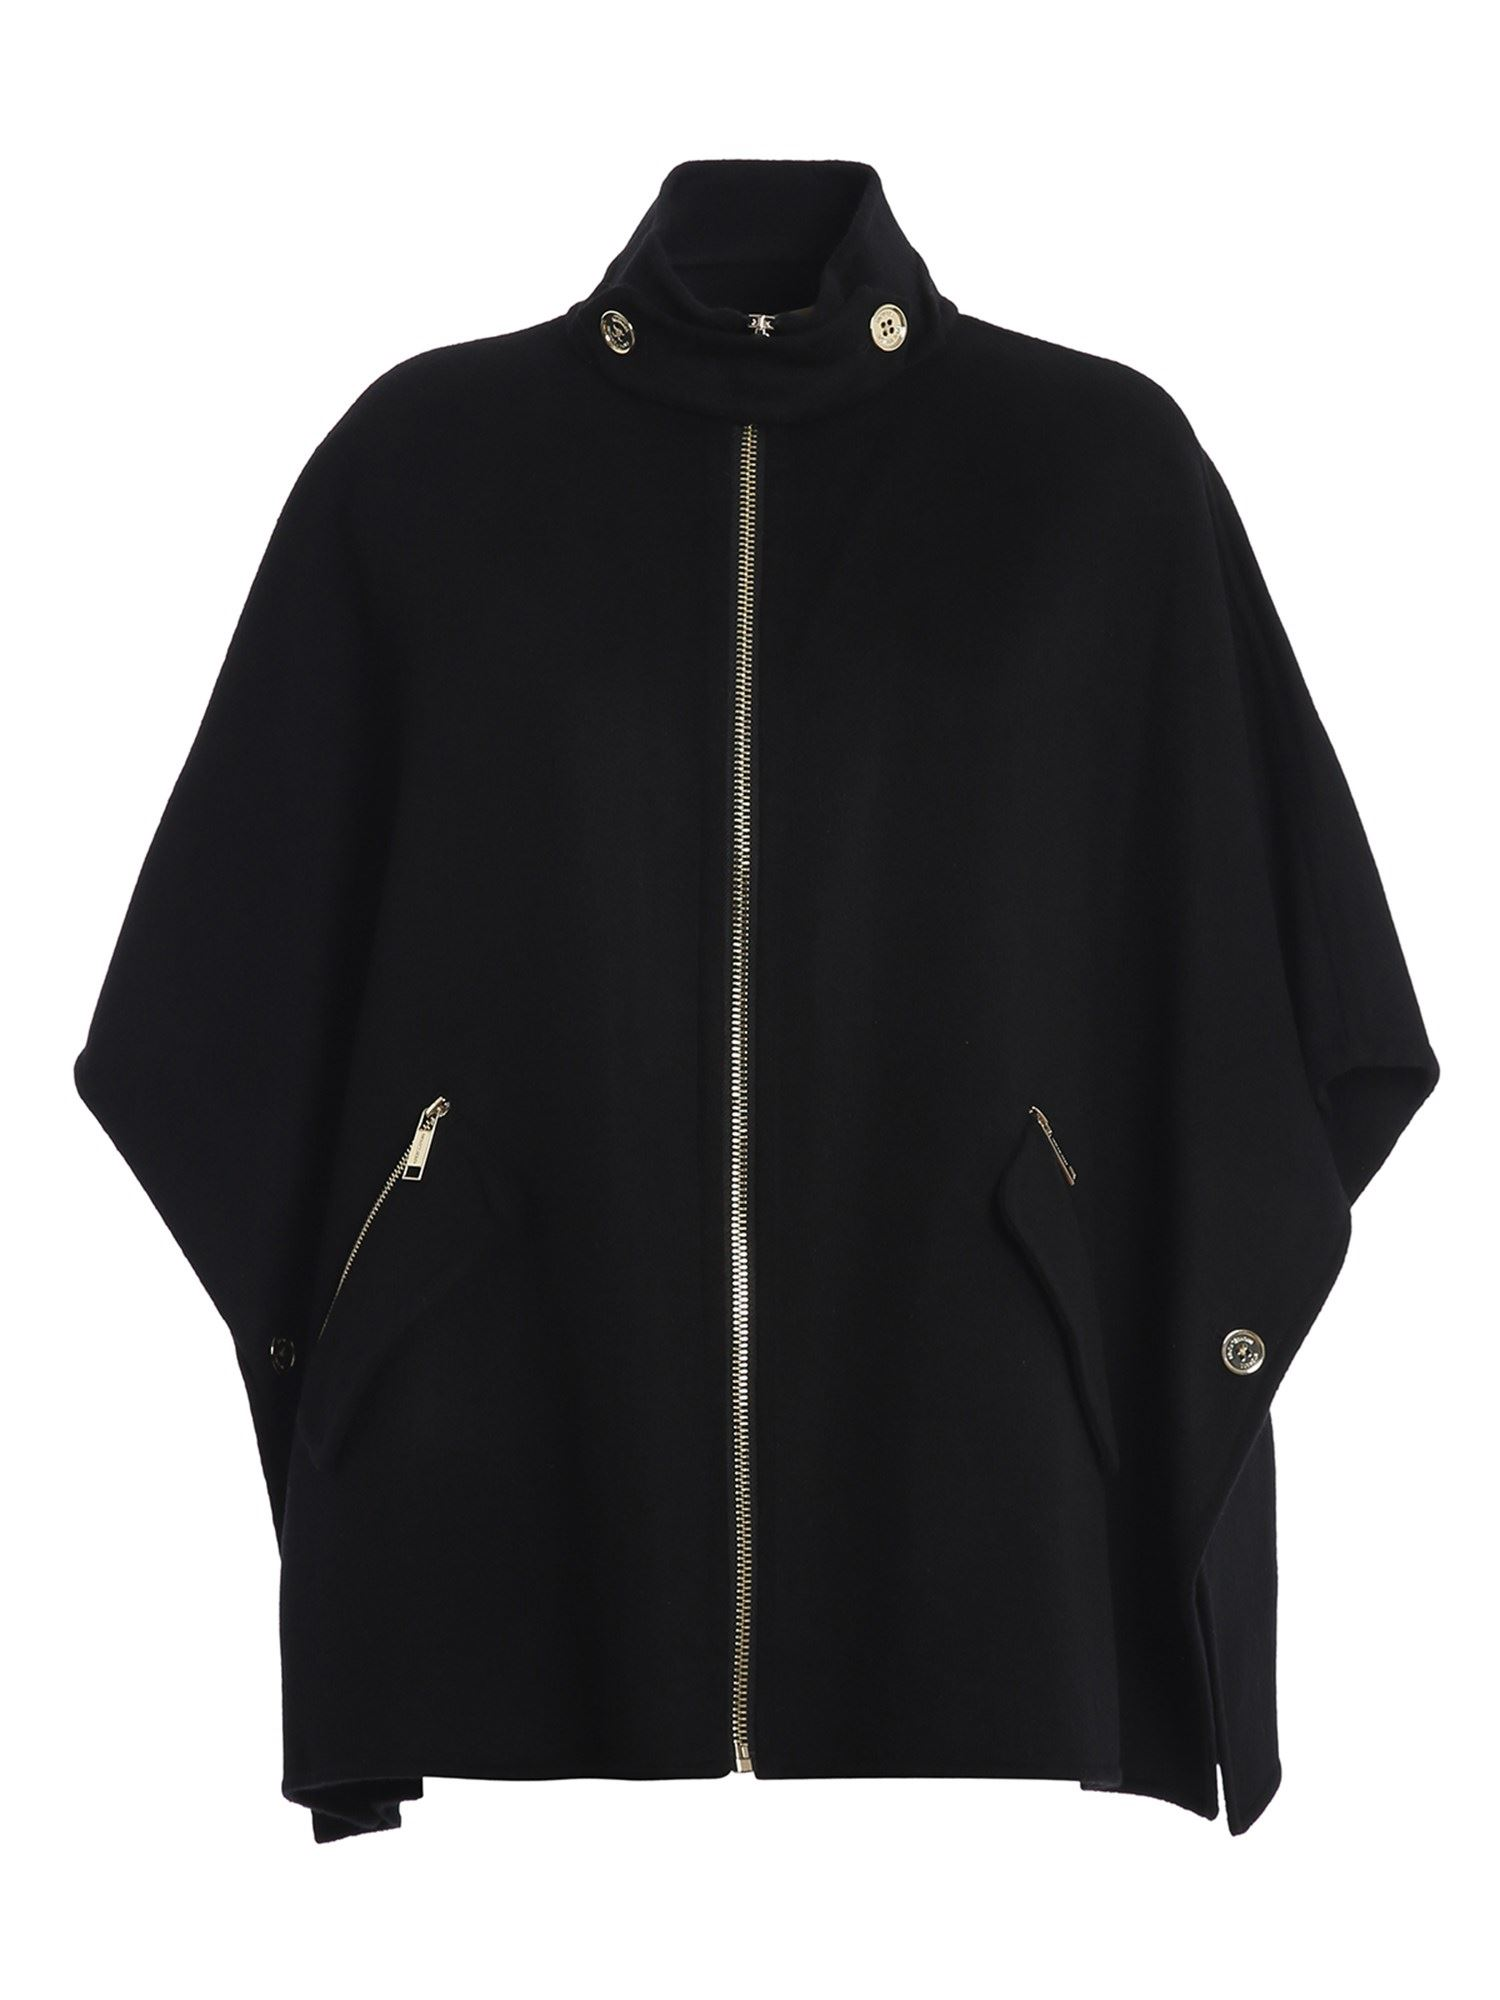 Michael Kors WOOL BLEND PONCHO IN BLACK